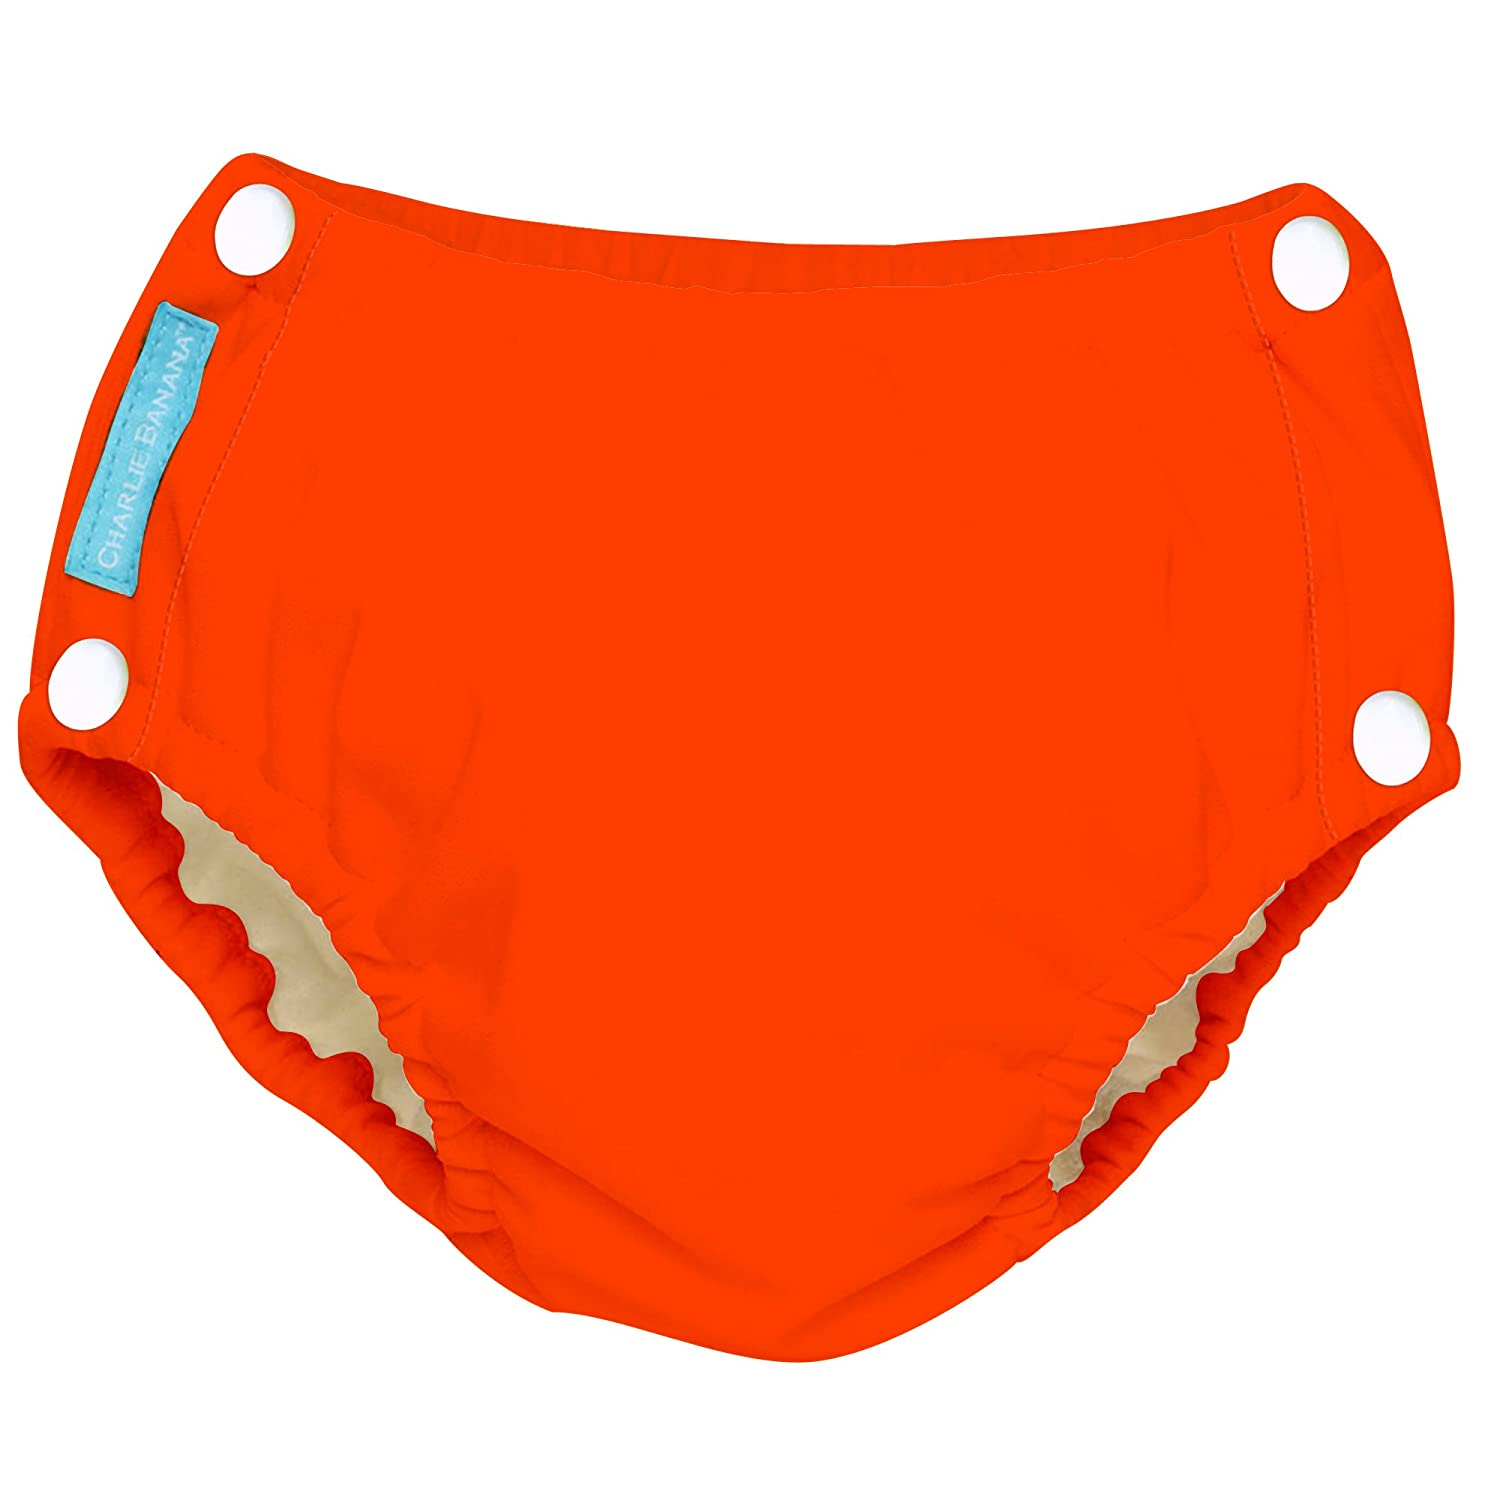 Charlie Banana Reusable Easy Snaps Swim Diaper, Fluorescent Orange, X-Large 8870252